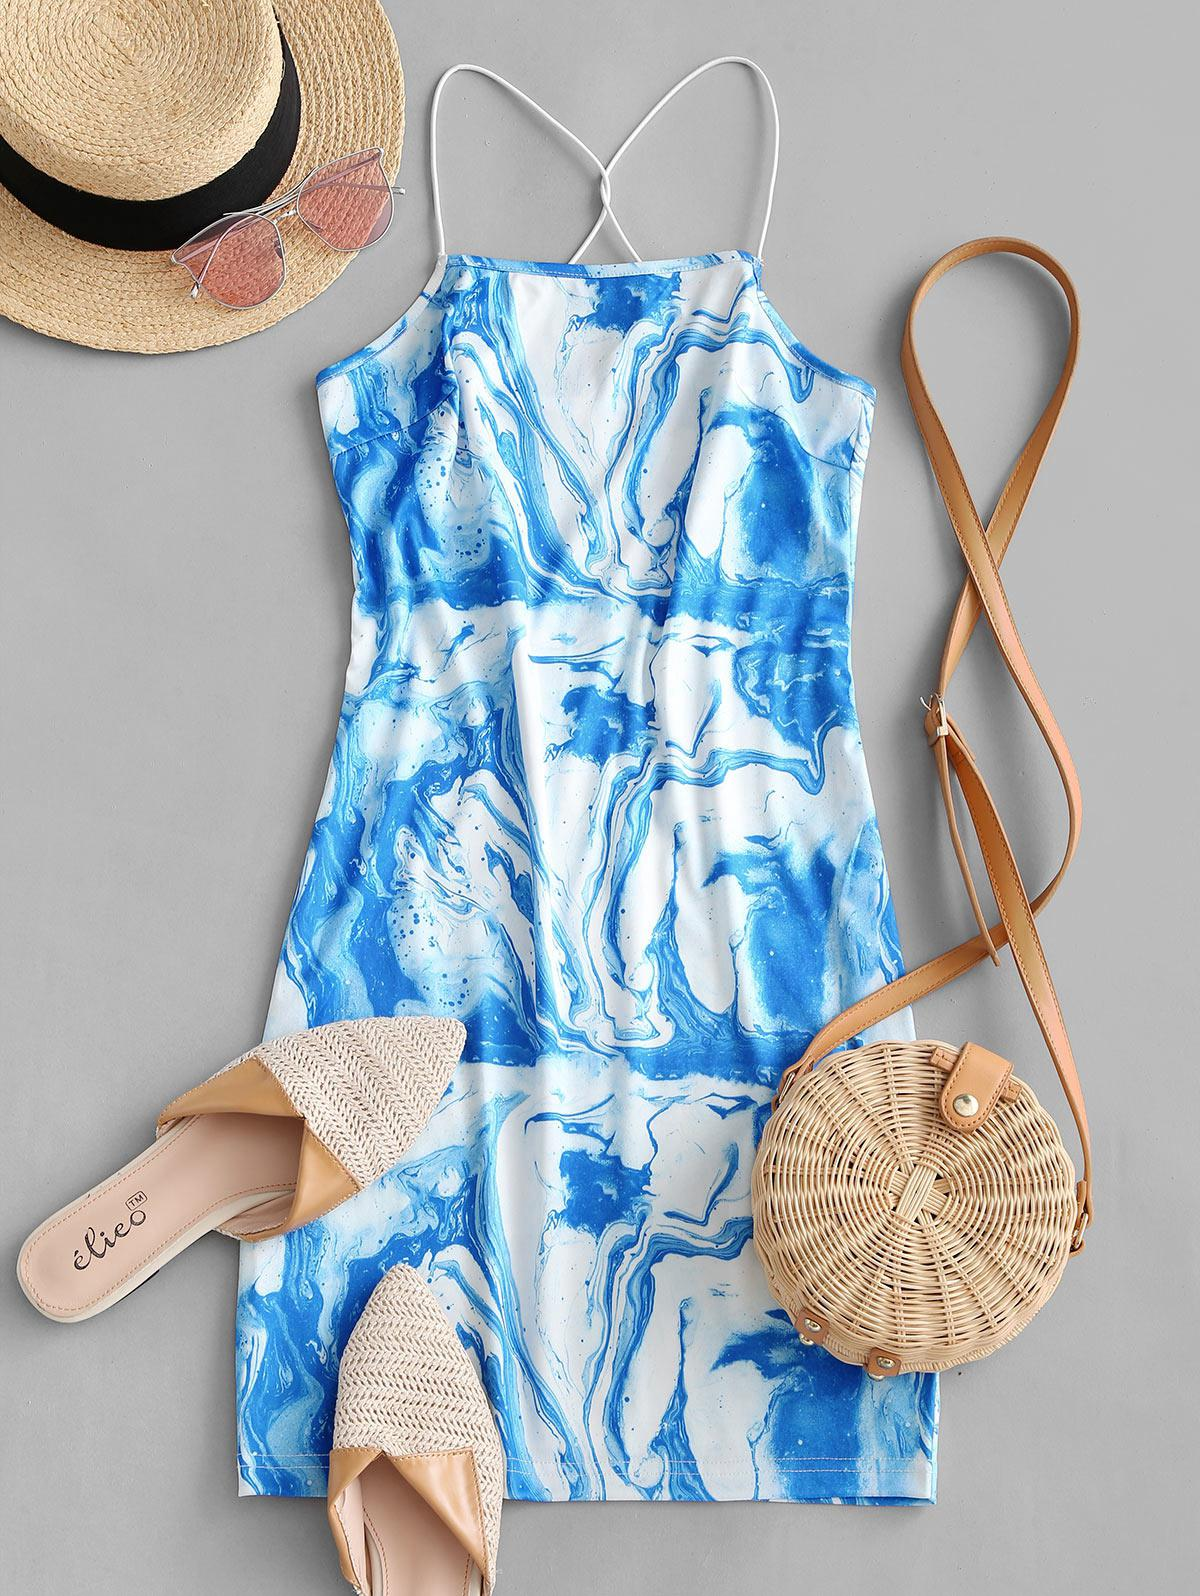 ZAFUL Agate Print Criss Cross Bodycon Cami Dress